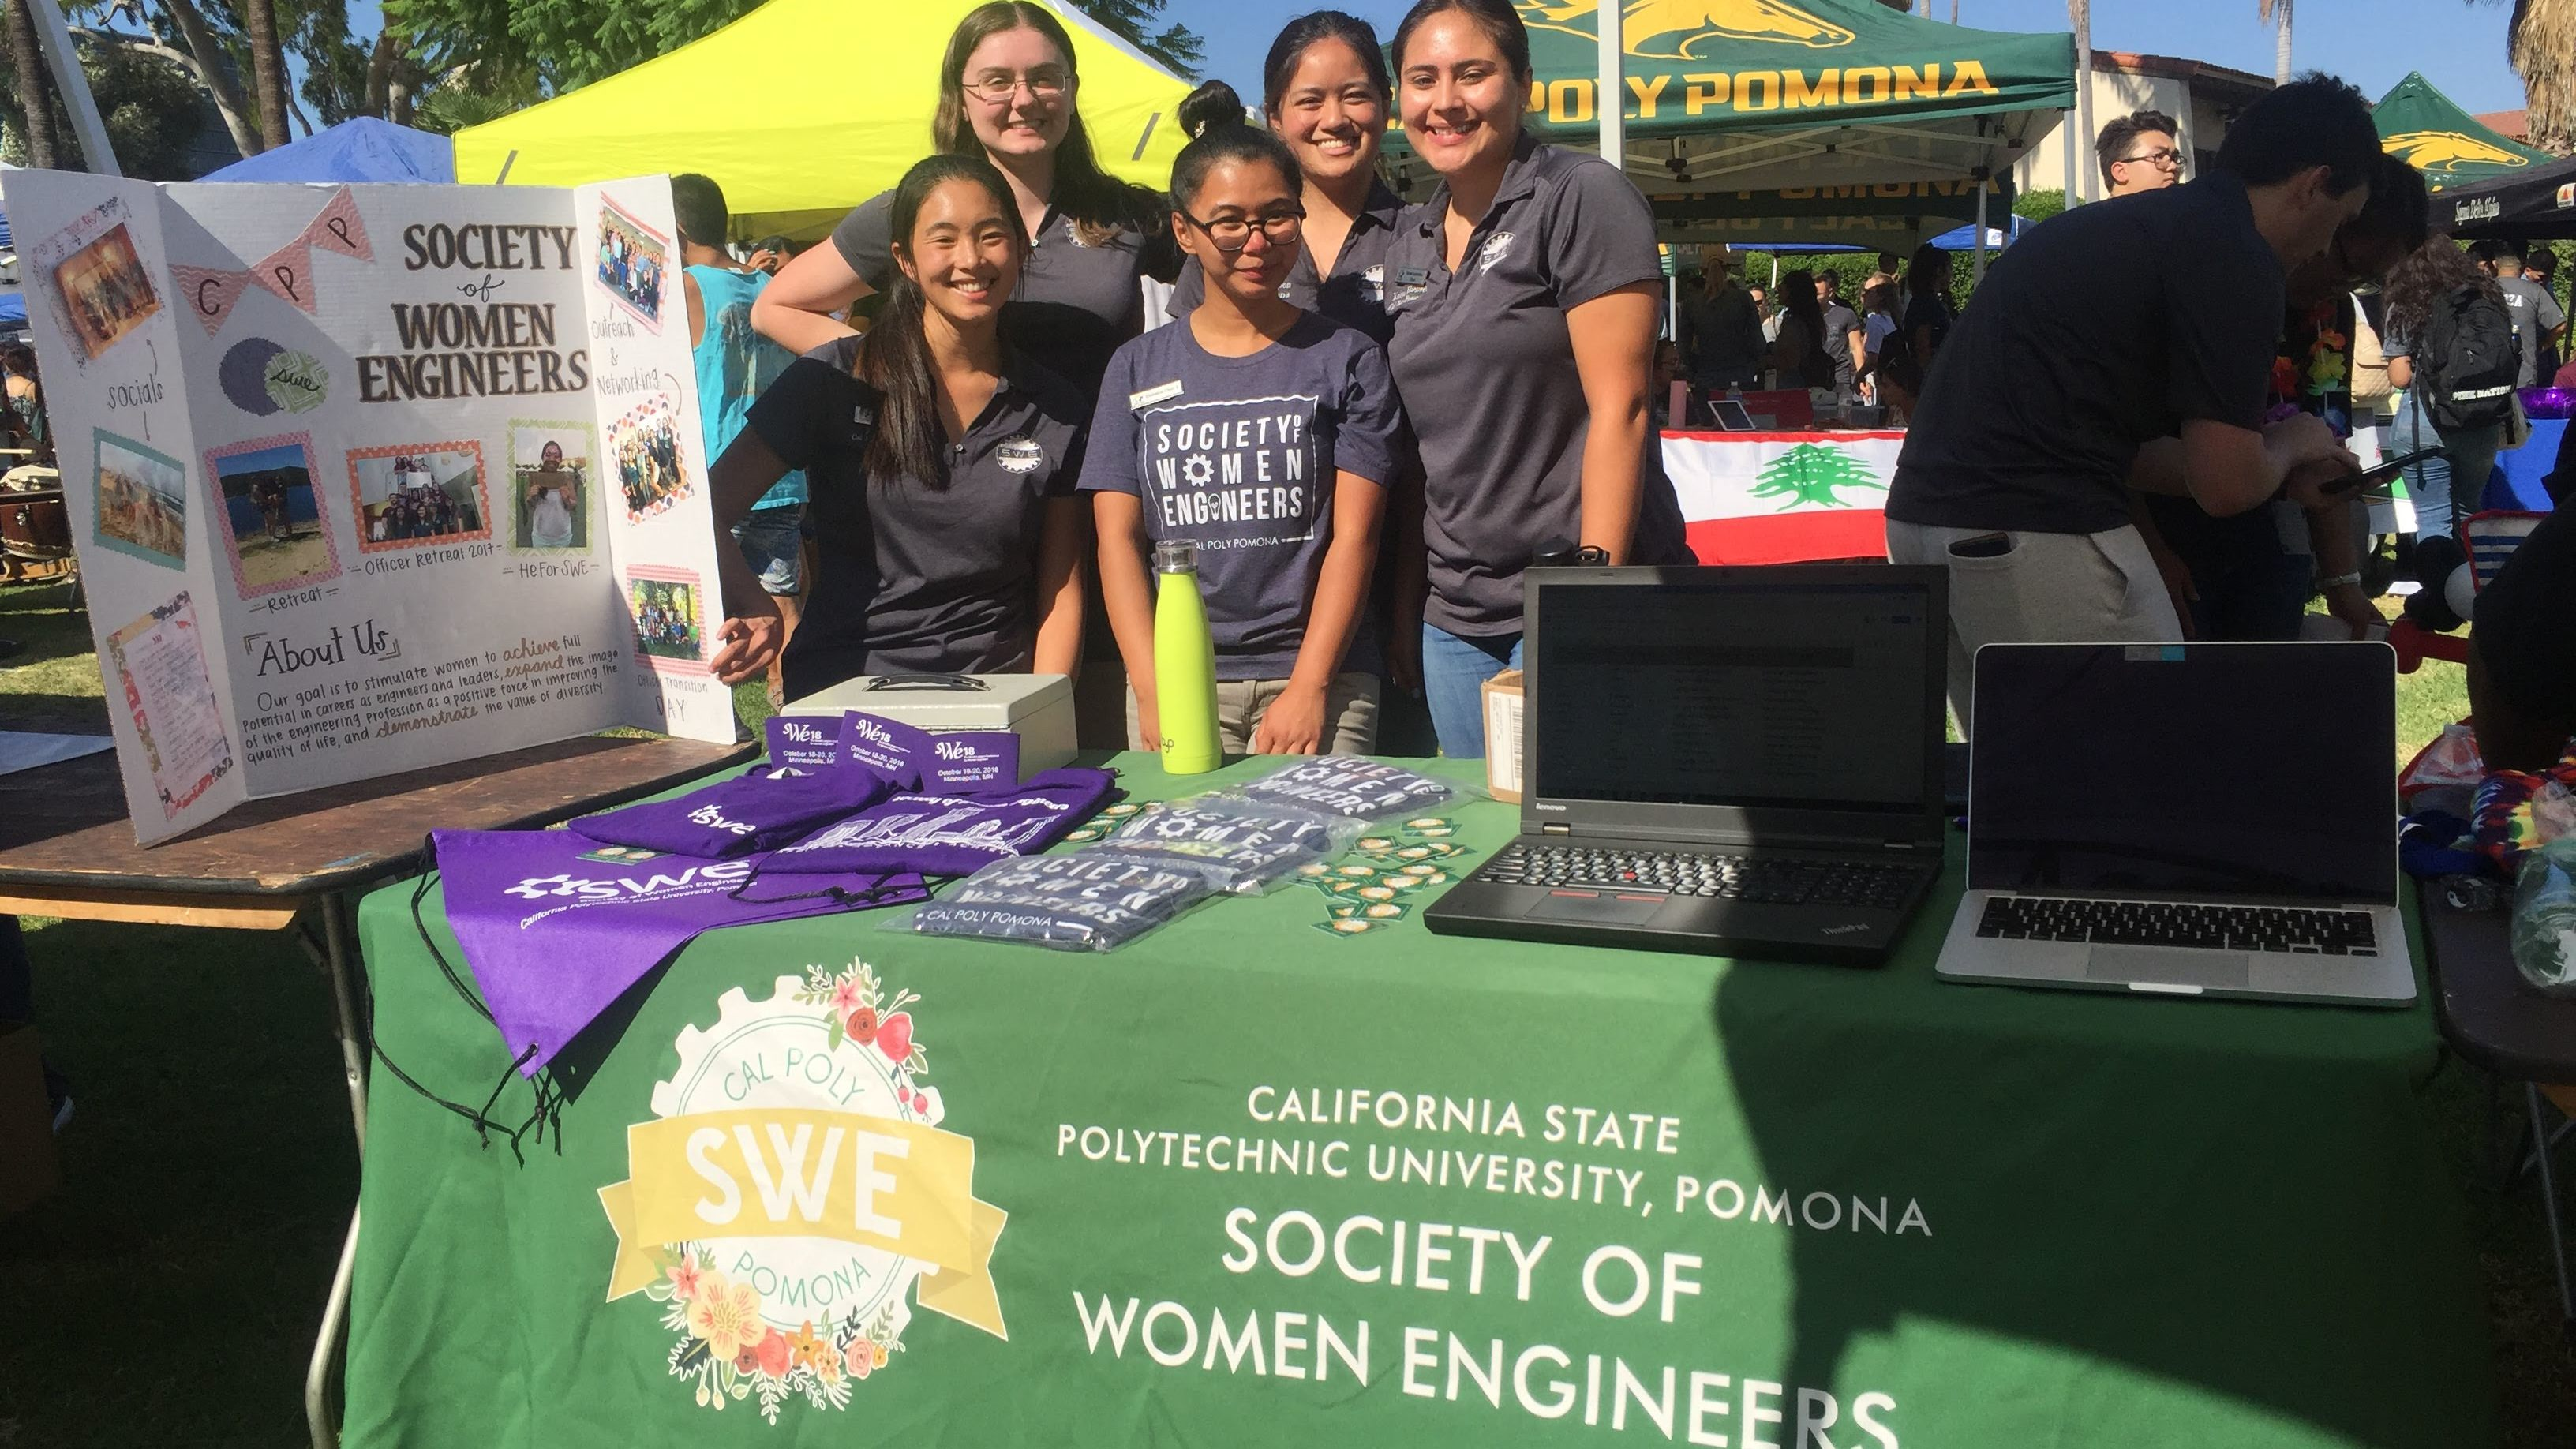 SWE Students Recruiting Freshmen and New Members at a Club Fair